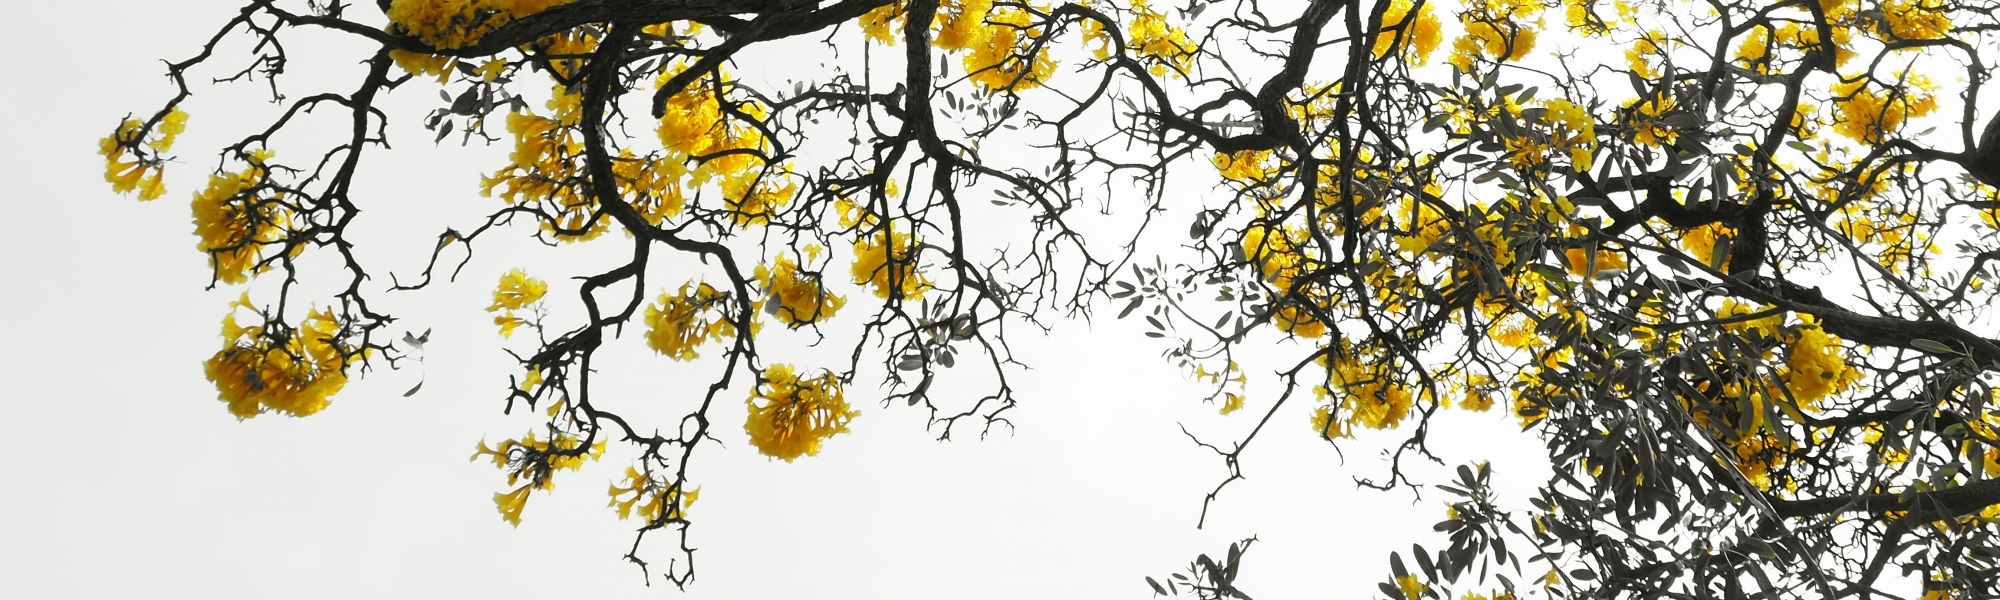 Kassia Academy - Therapeutic Approaches image of tree with branches yellow blossom